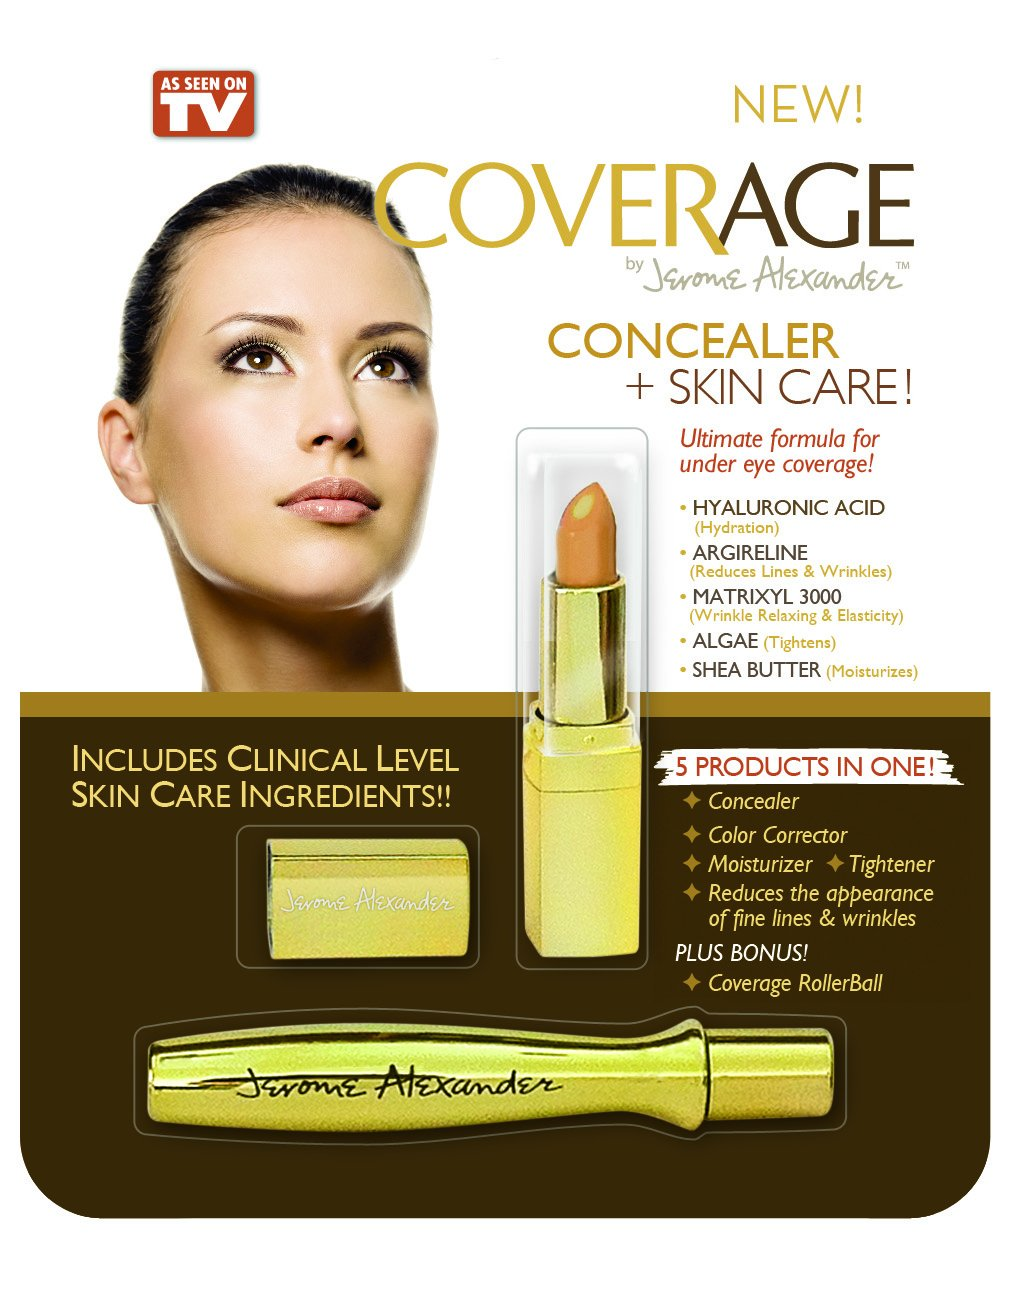 CoverAge by Jerome Alexander - A 5-in-1 Concealer Stick and Rollerball for Undereye Coverage Makeup - Concealer, Corrector, Moisturizer and Tightener All-In-One